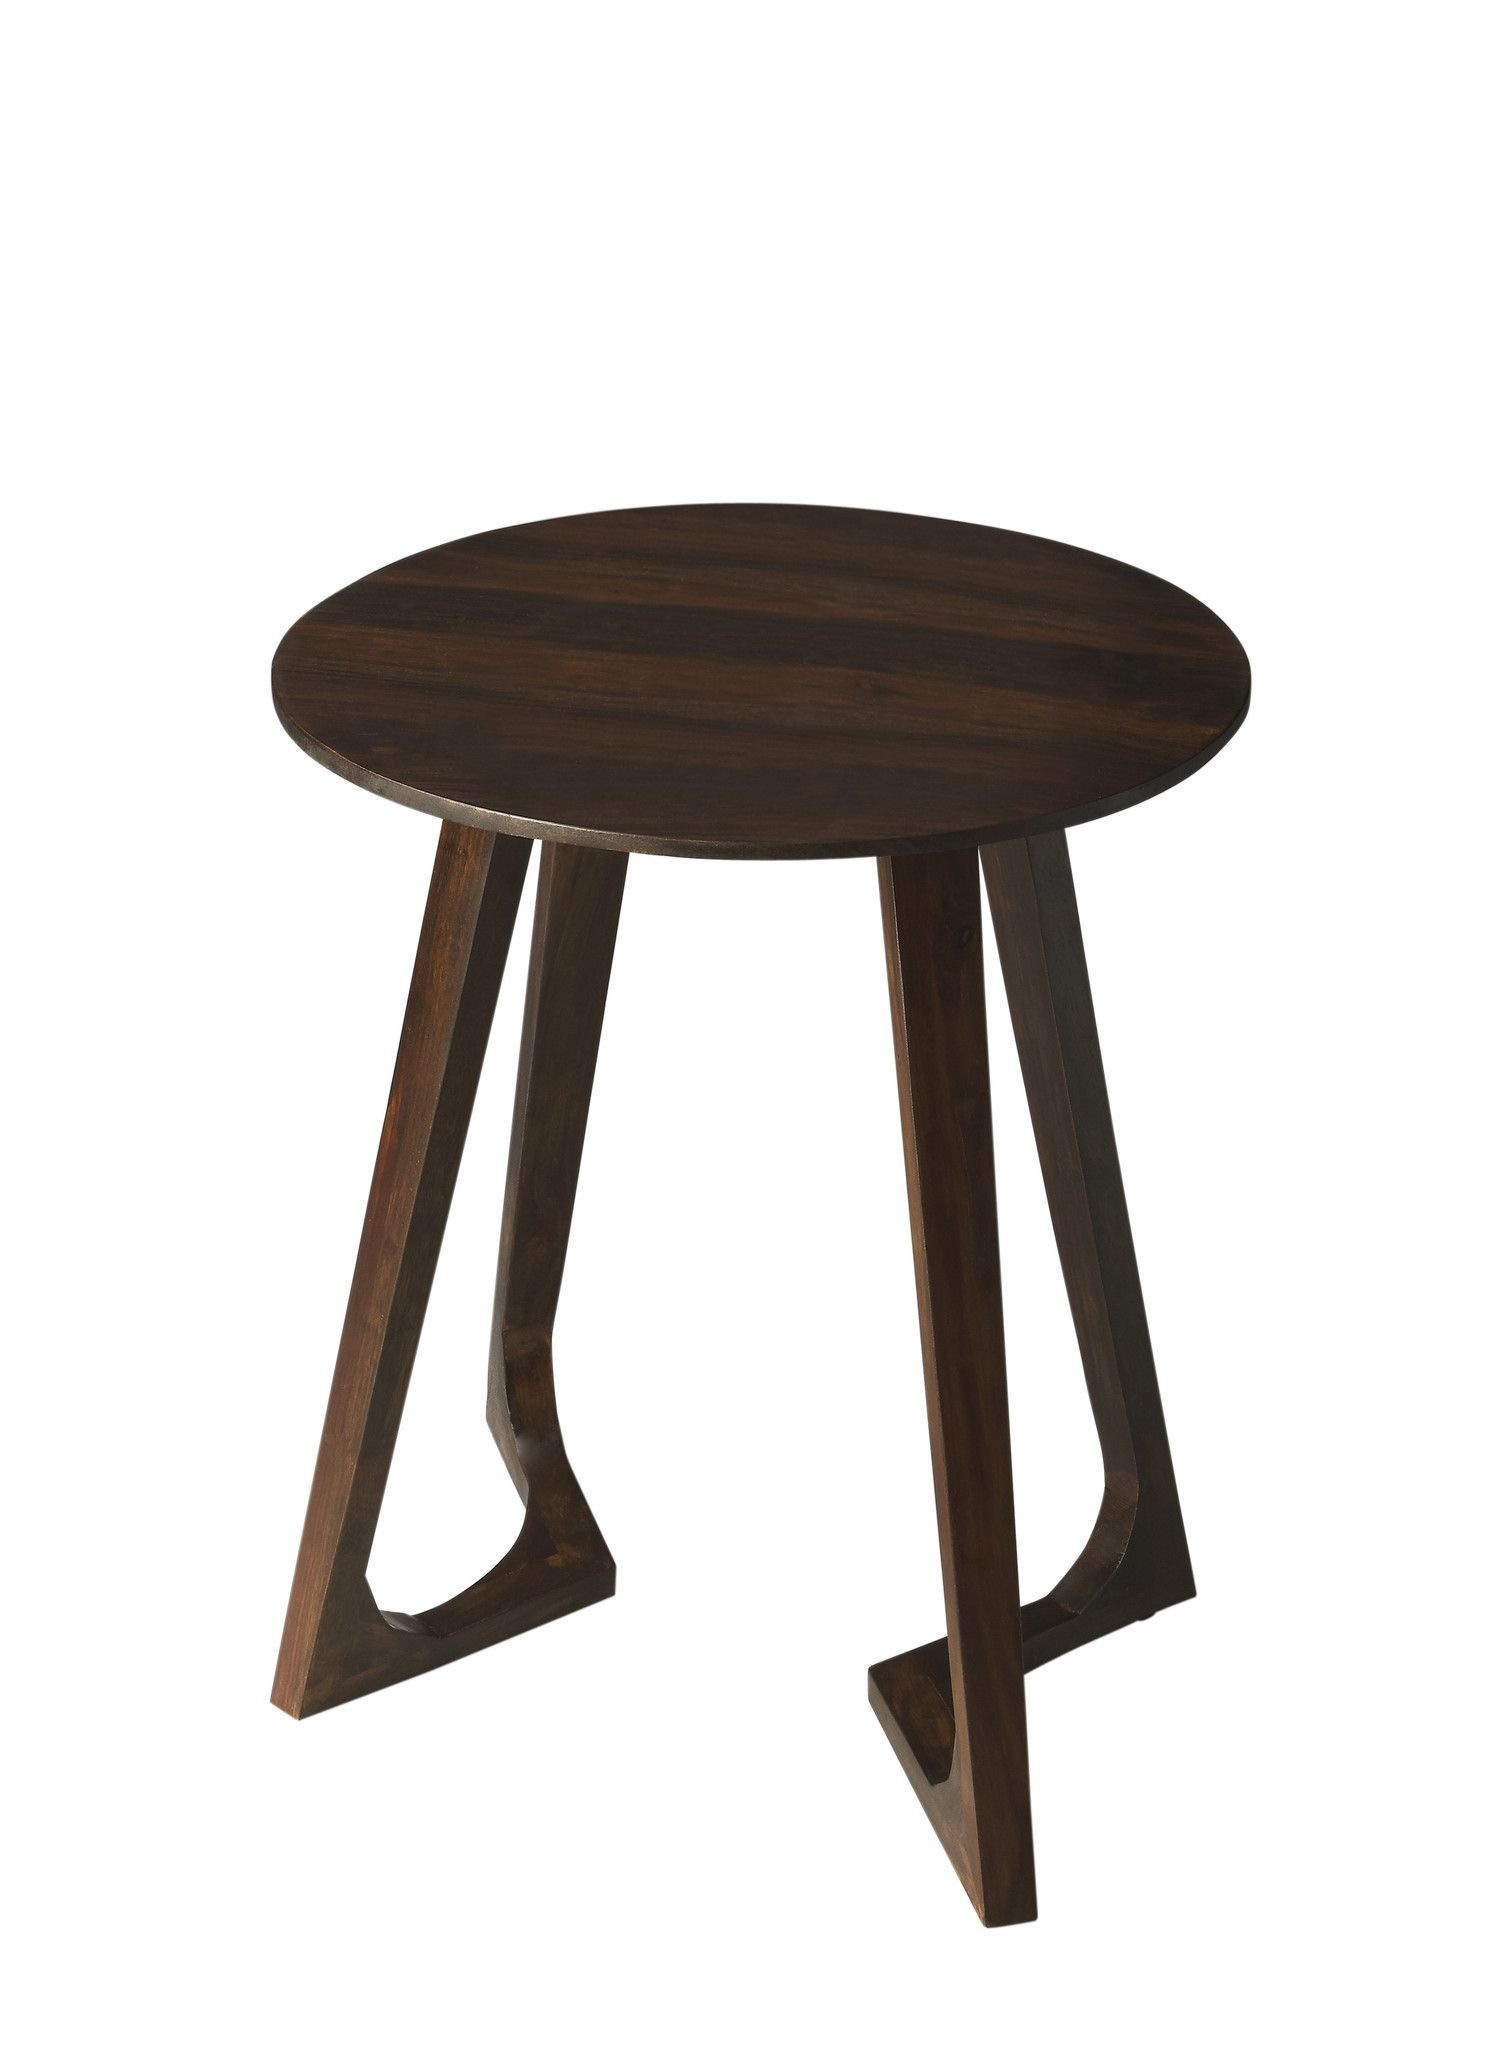 modern round accent table dark brown solid wood contemporary crafted entirely from sheesham with espresso finish whimsically unorthodox legs accentuate this compelling aesthetic